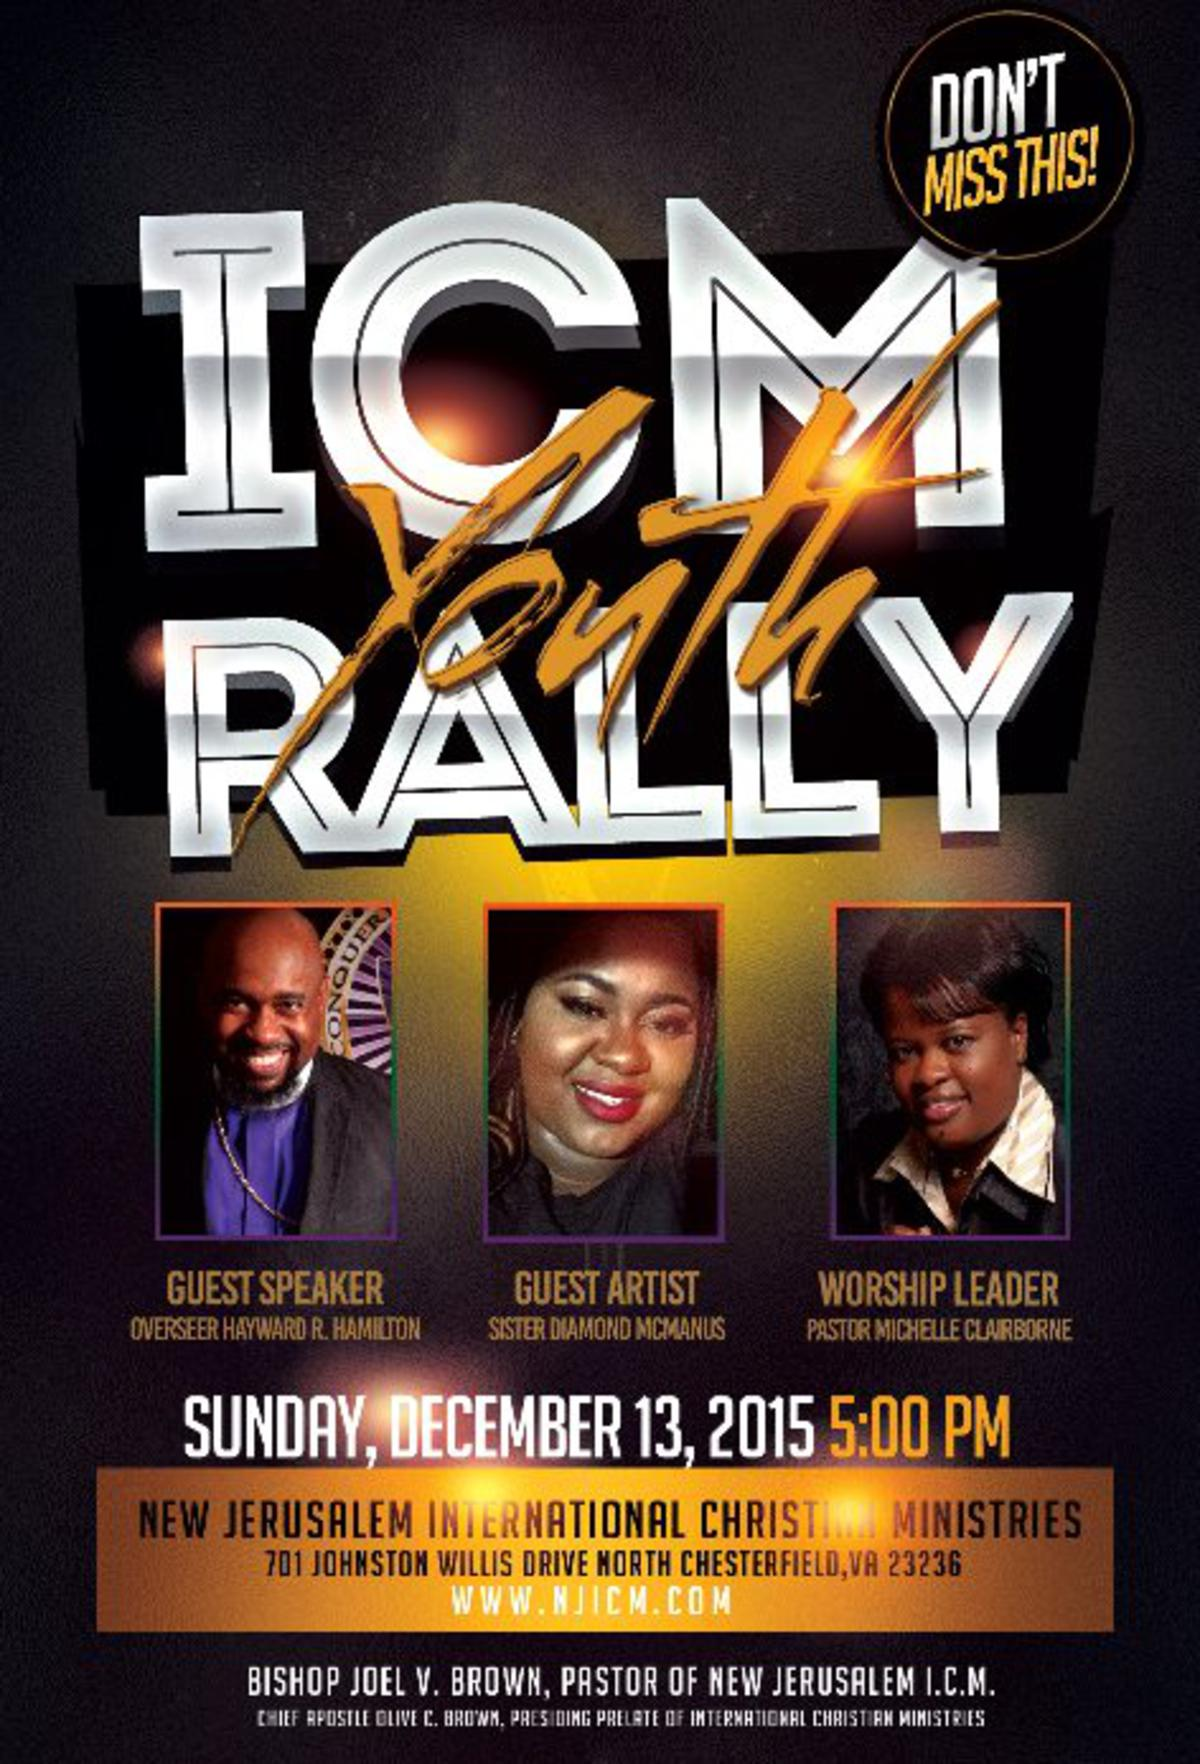 ICM YOUTH RALLY